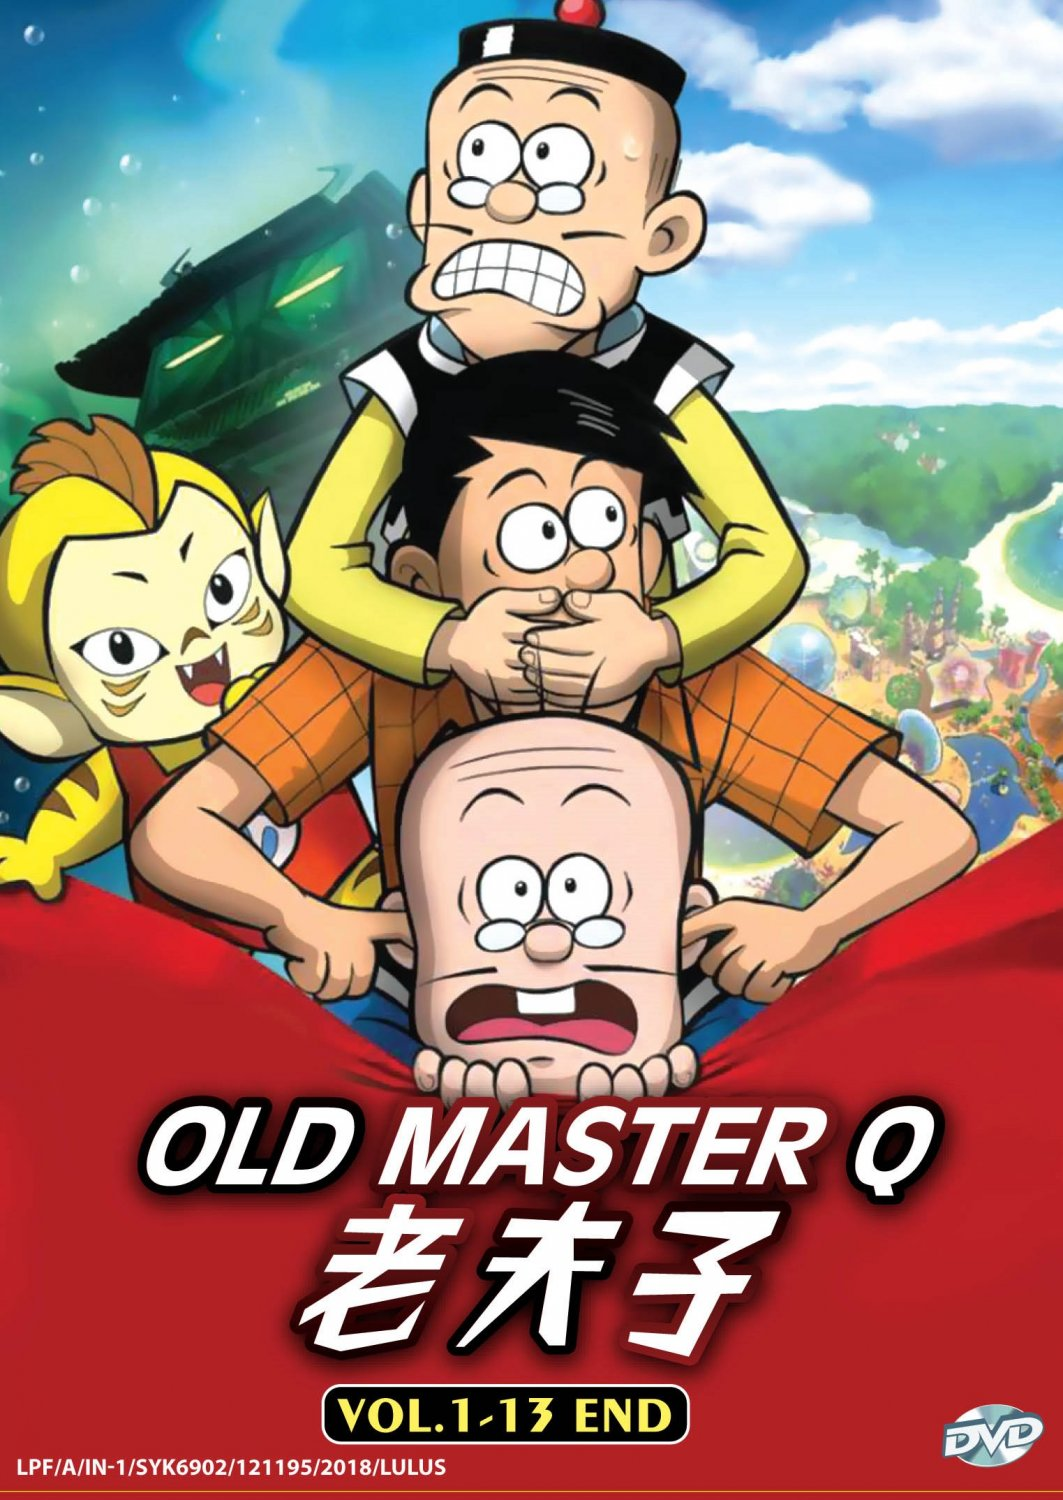 DVD Cantonese Cartoon Old Master Q Vol.1-13 End �夫� Anime Region All